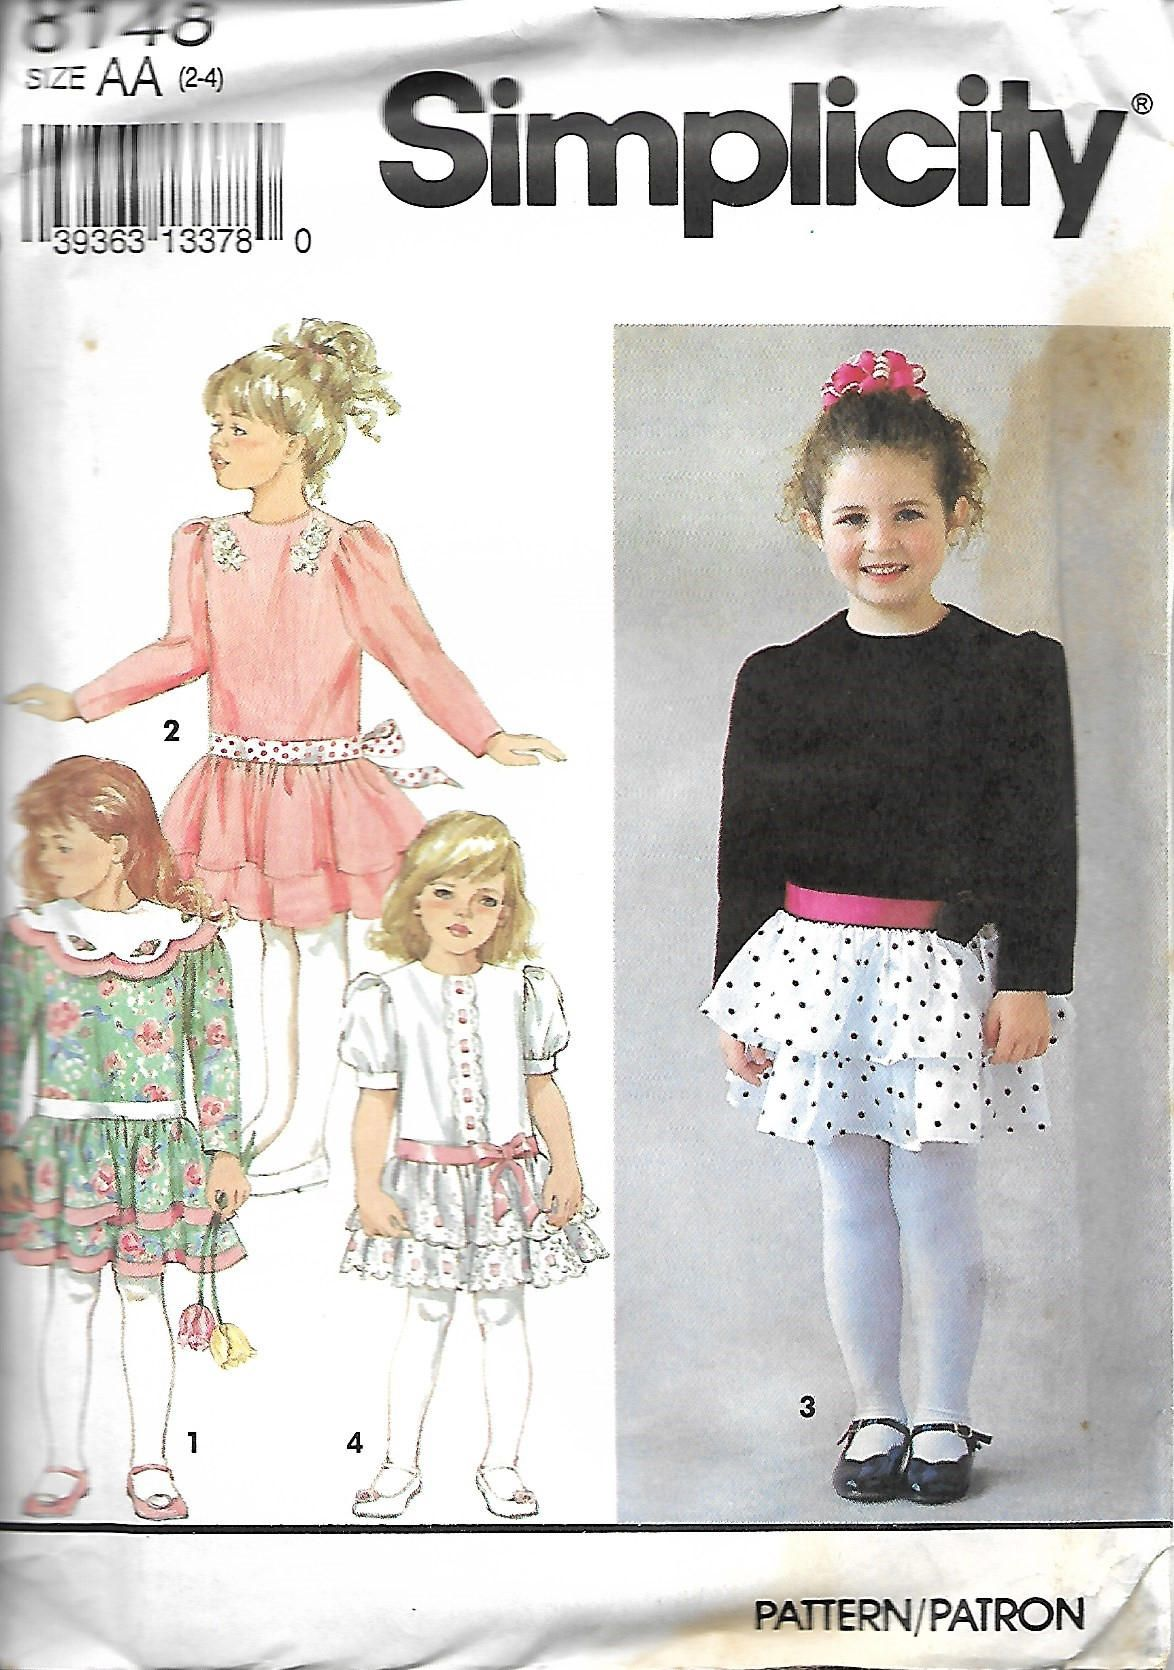 Simplicity 8148 Child's Tiered, Dropped Waist Dress